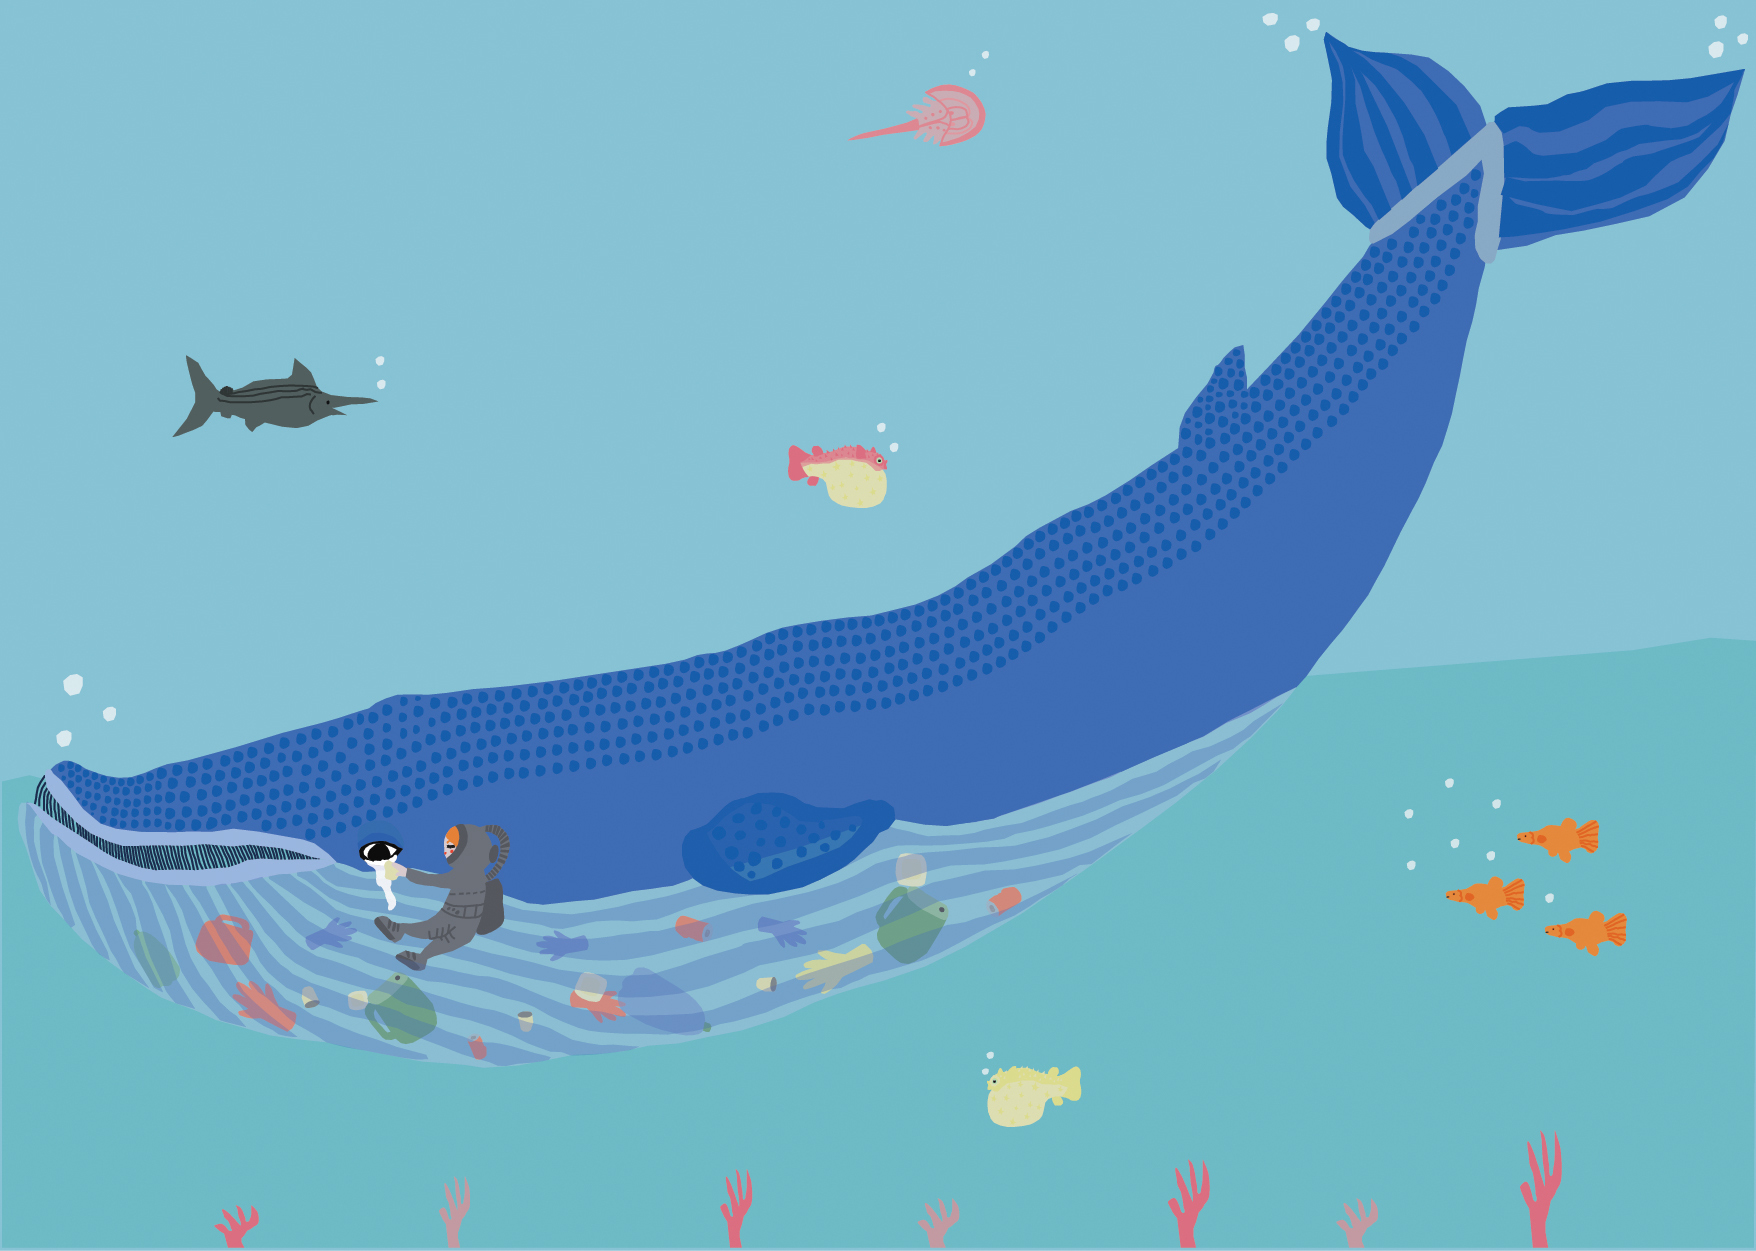 Large blue whale graphhic with other sea creatures around, and a diver wiping tears from the whale's big eye